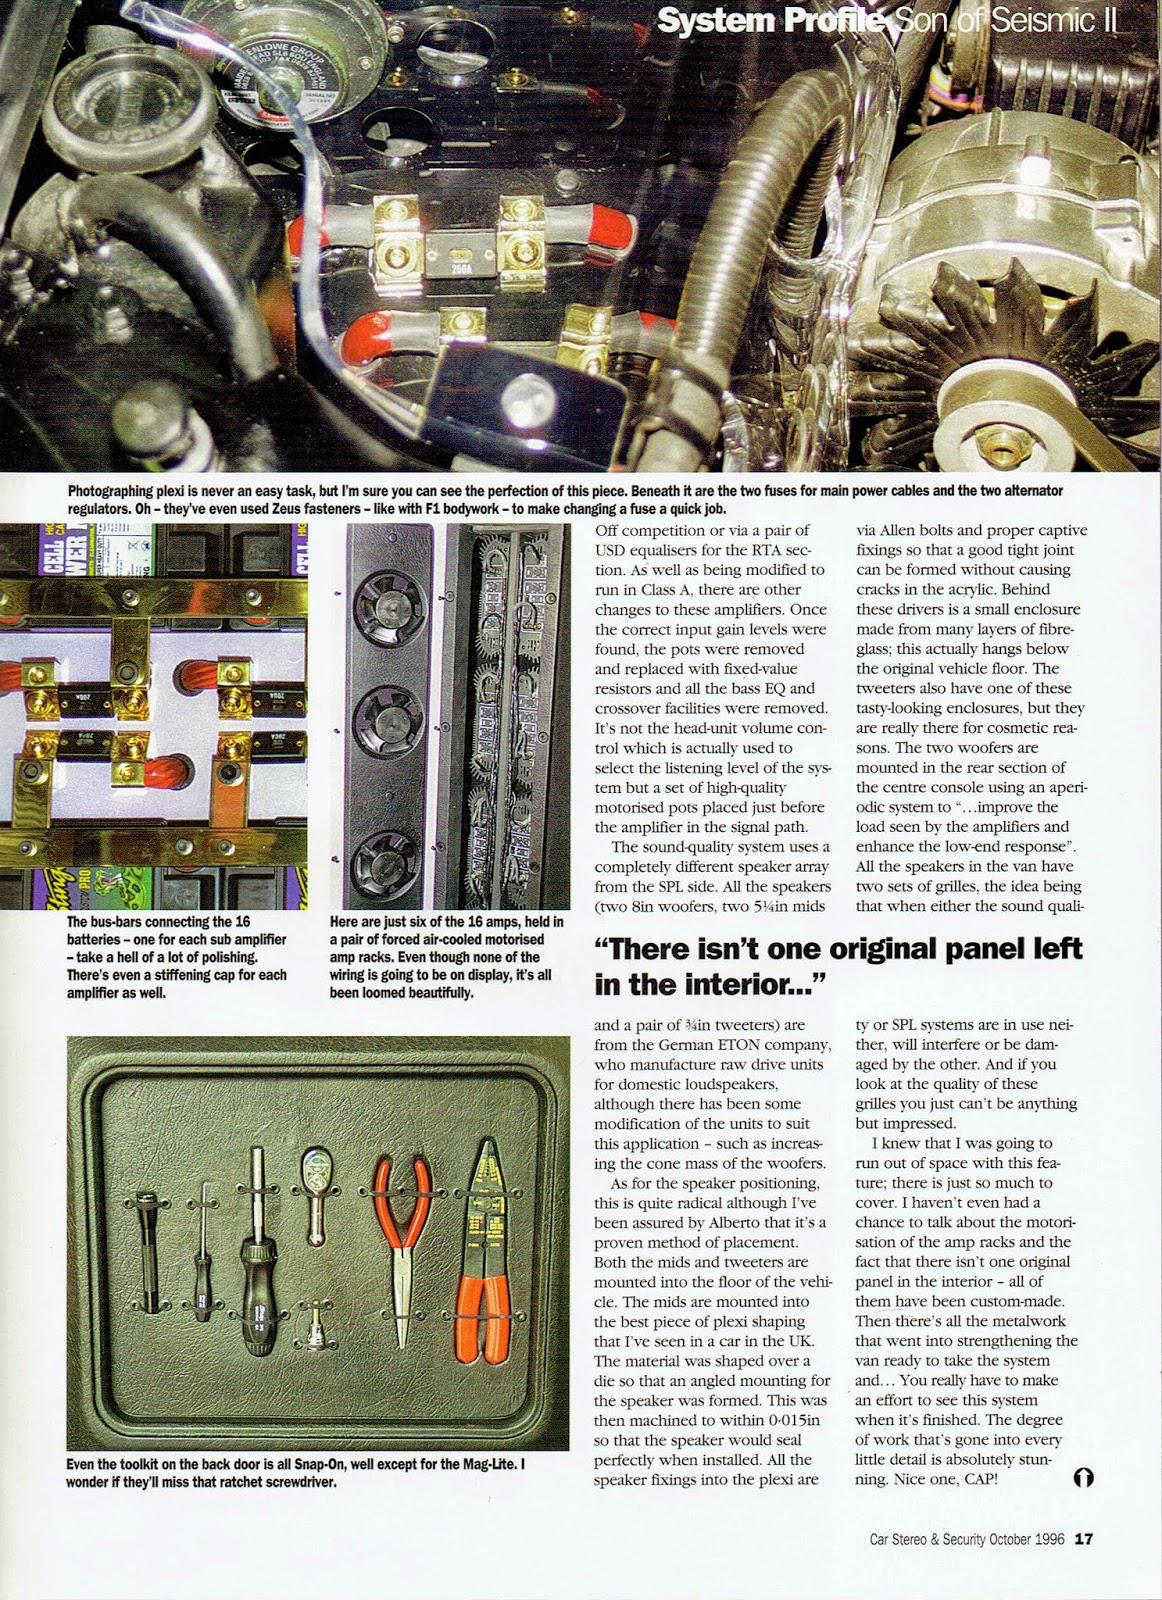 Image of British Car Stereo & Security magazine's Son of Seismic II article - third page